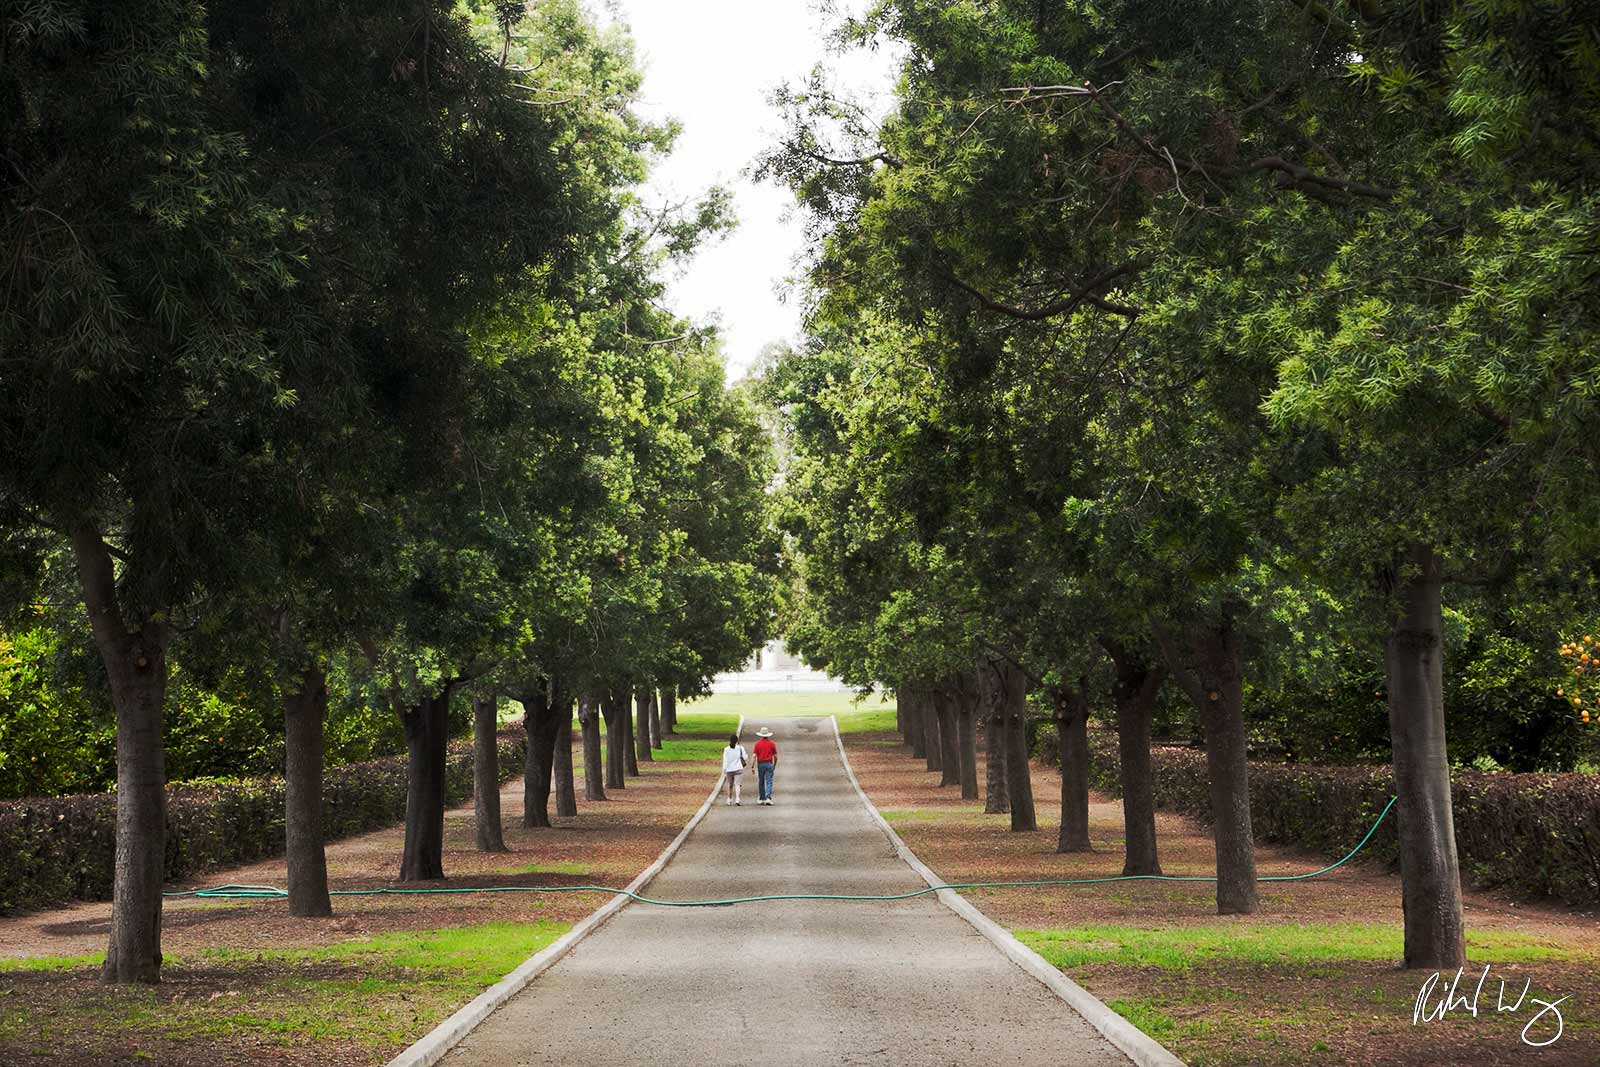 Couple Walking Down Tree-Lined Road Toward Mausoleum at The Huntington, San Marino, California